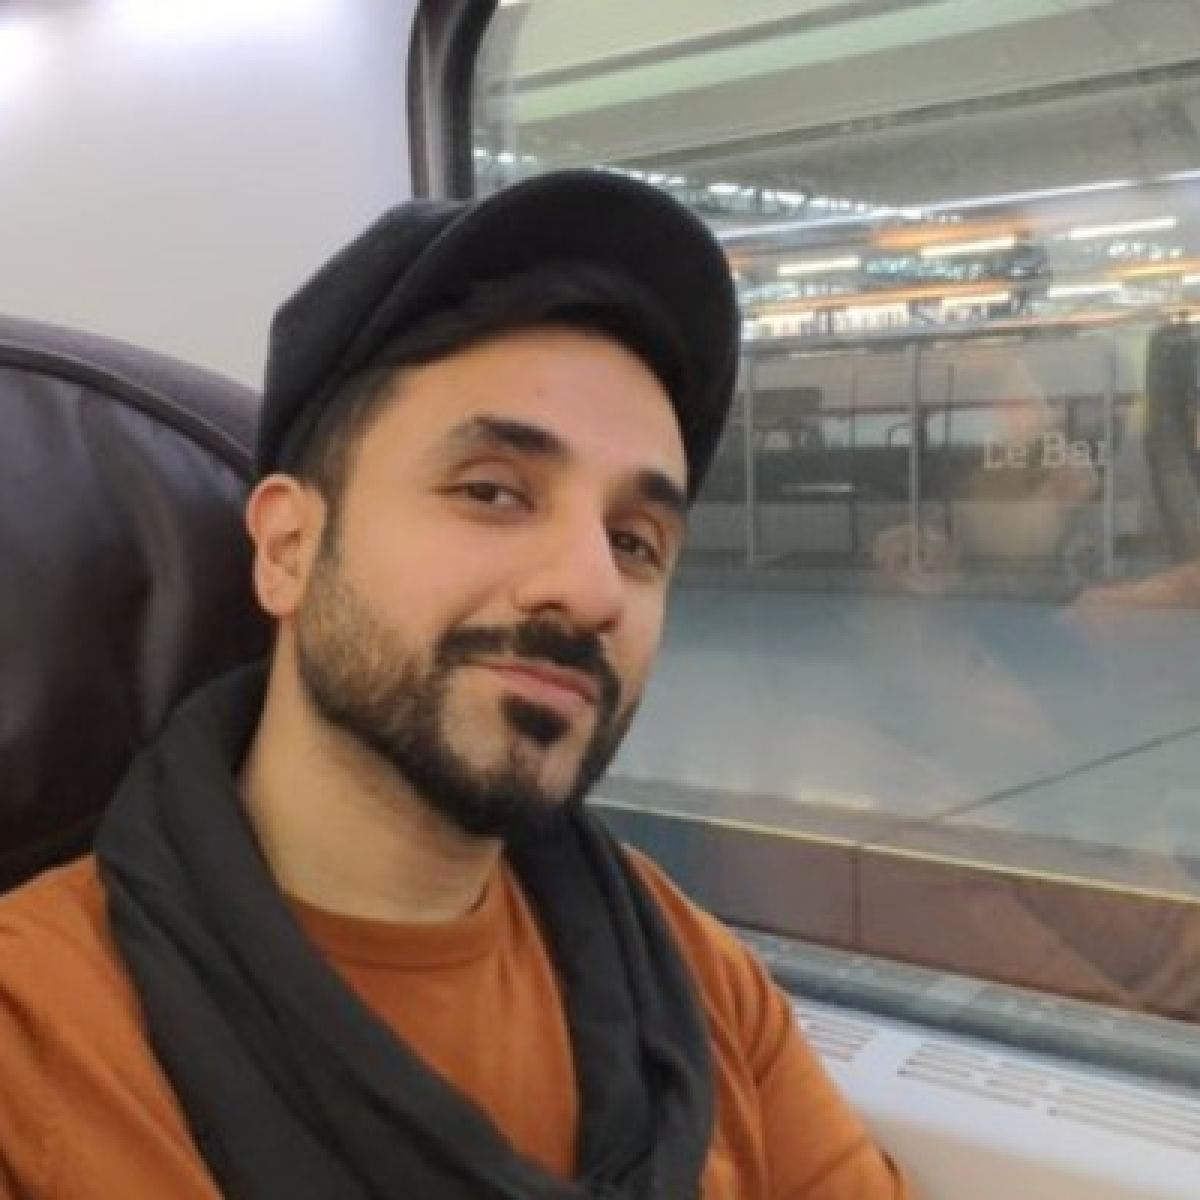 'Aarey activist in the streets, HSR supporter in the sheets': Twitter trolls Vir Das for taking Eurostar high-speed train